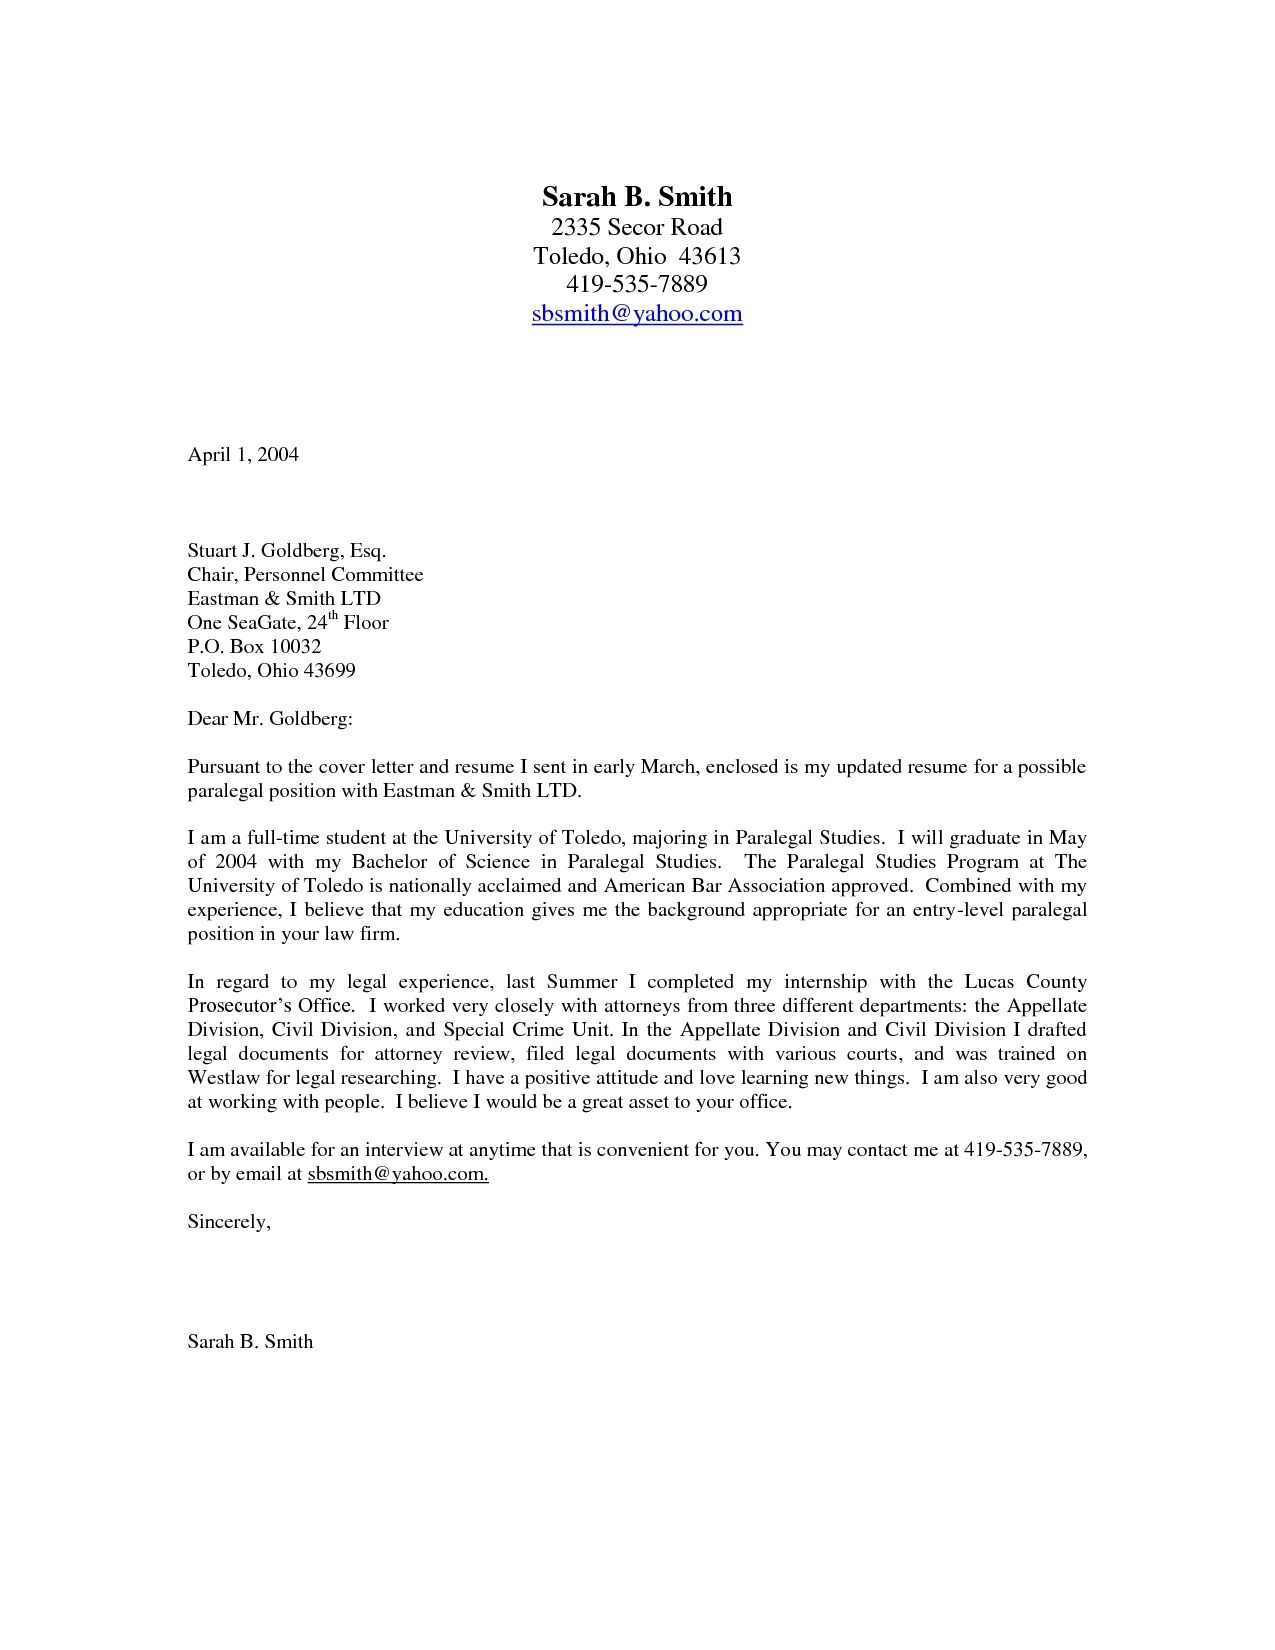 resignation letter template google docs  cover letter template google docs resume free templates ...